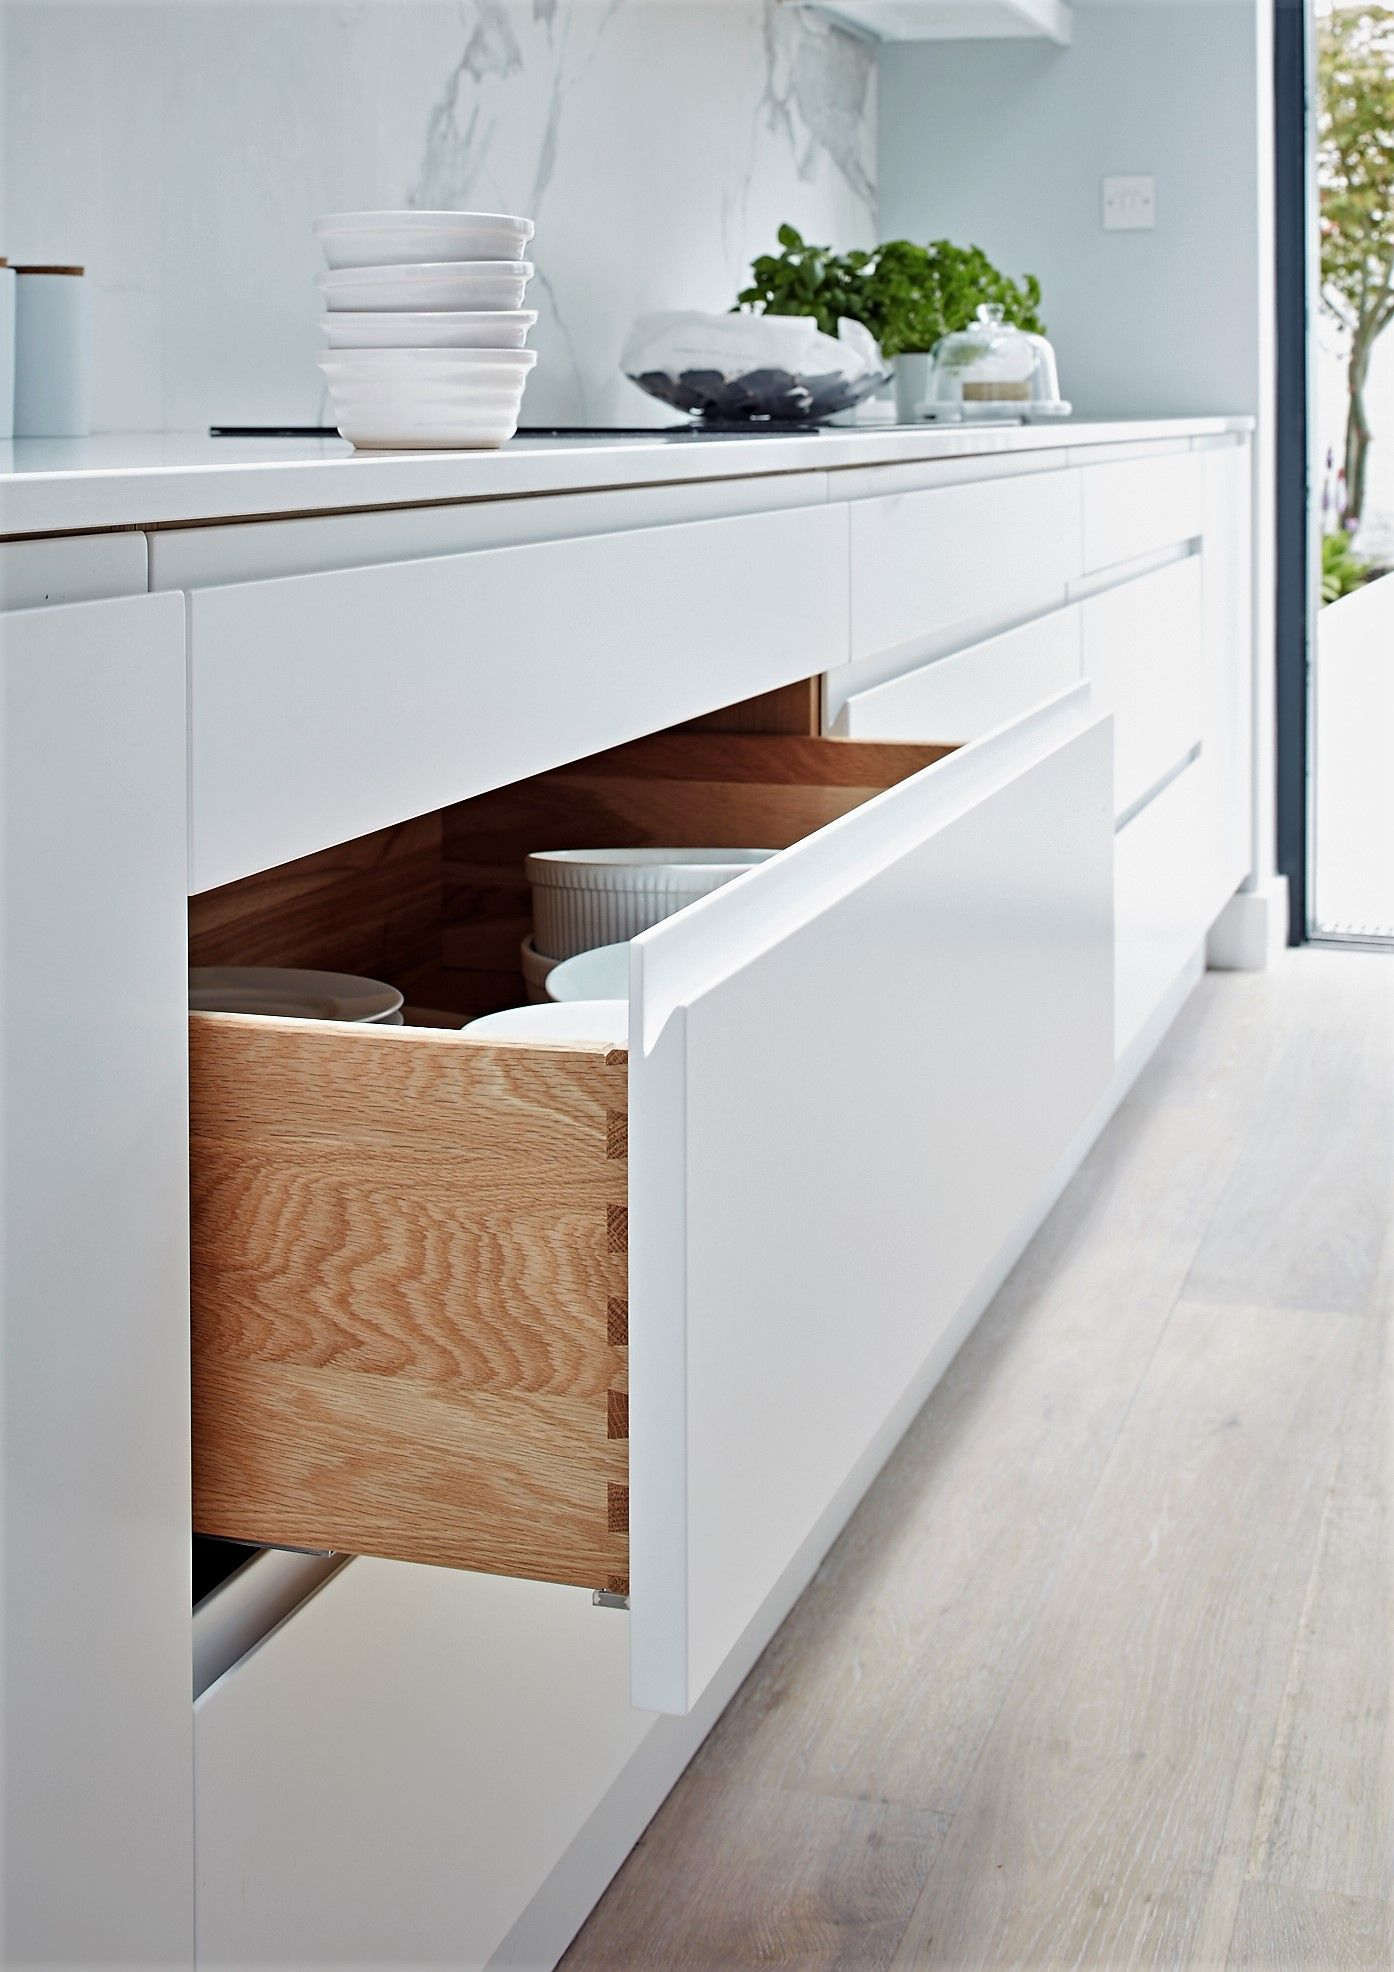 Pure Handleless Kitchen Cabinetry From John Lewis Of Hungerford All Our Ranges Have Traditionally Ma Handleless Kitchen Kitchen Cabinetry Contemporary Kitchen